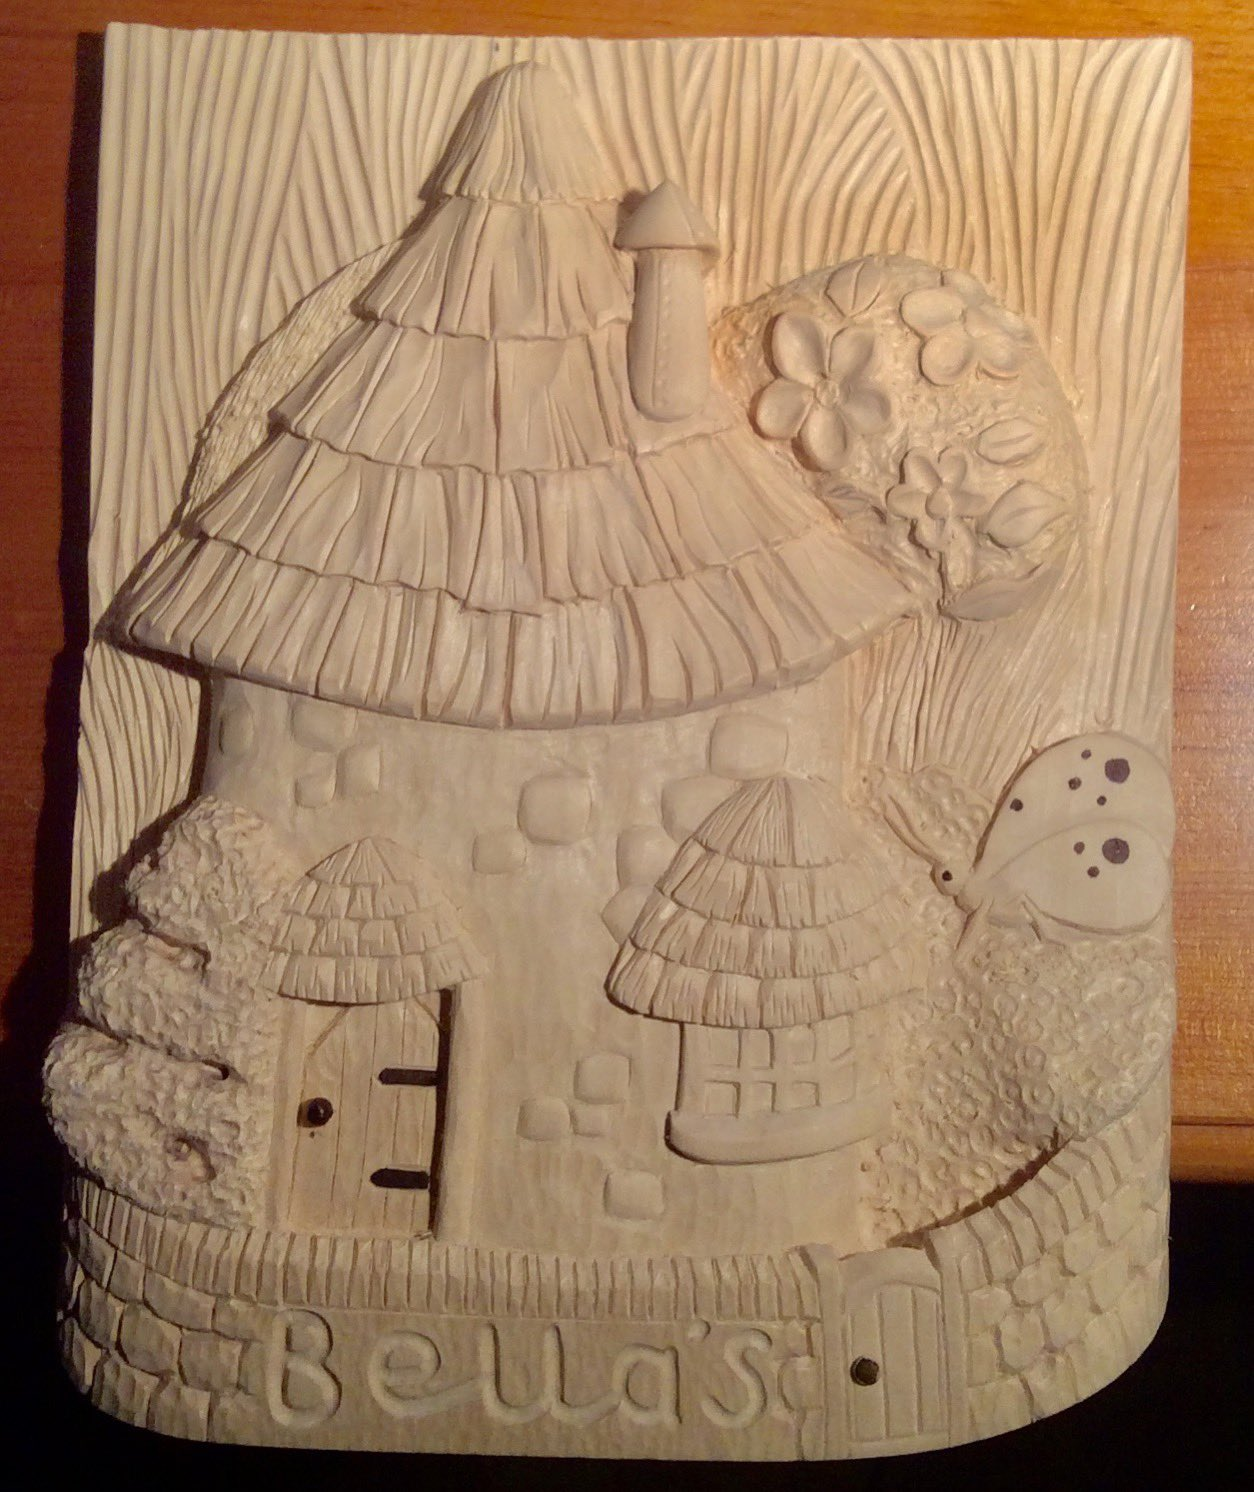 Made for my granddaughter carved in Lime (Tilia) https://t.co/Fl6cIIkdlP